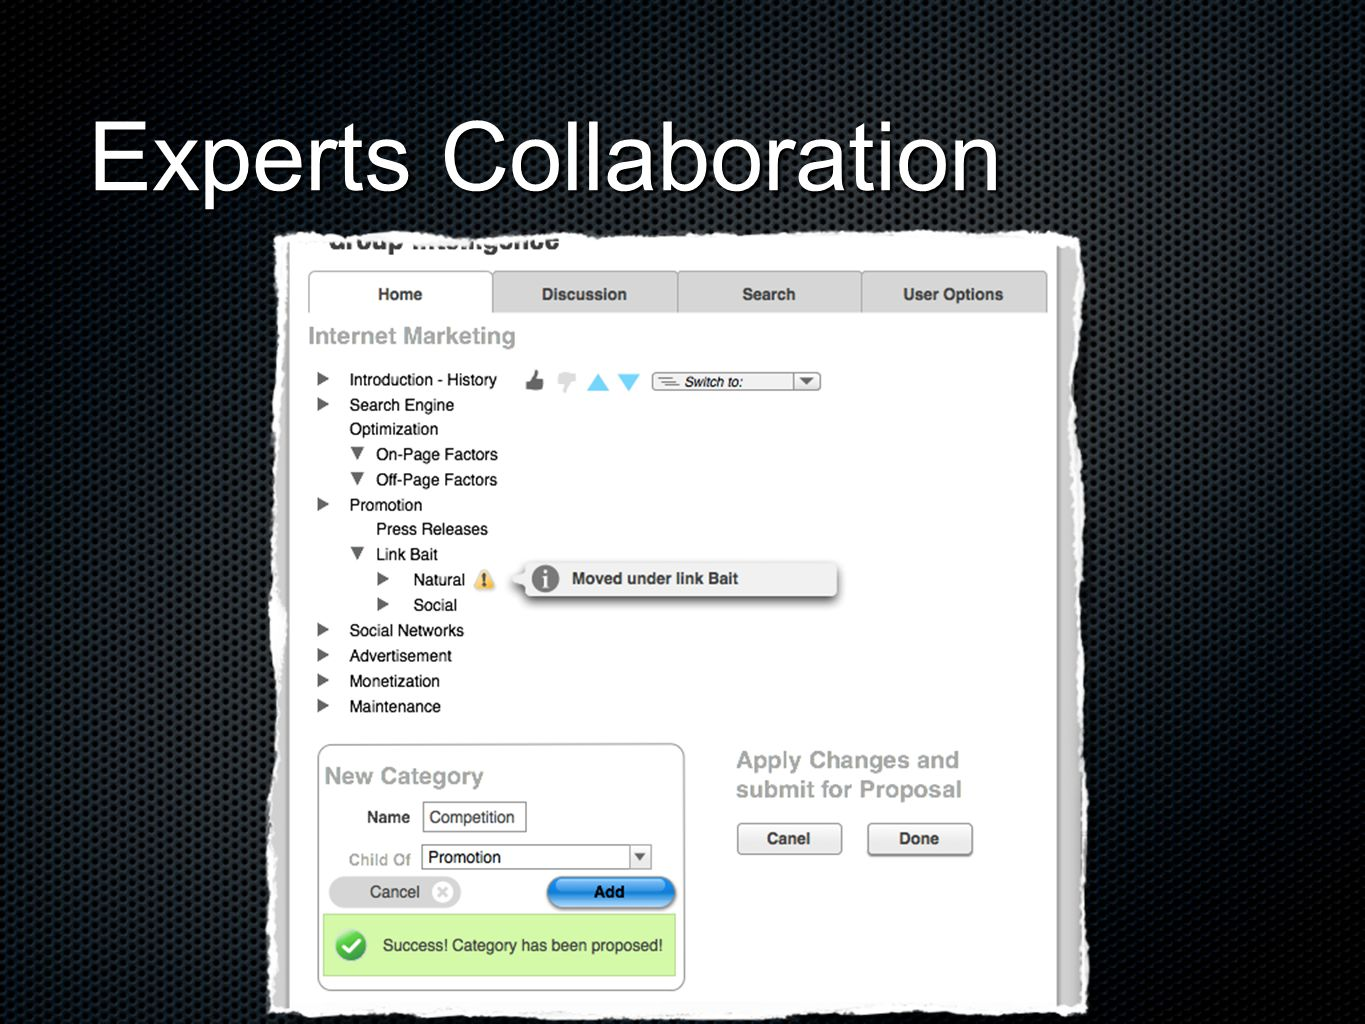 Experts Collaboration